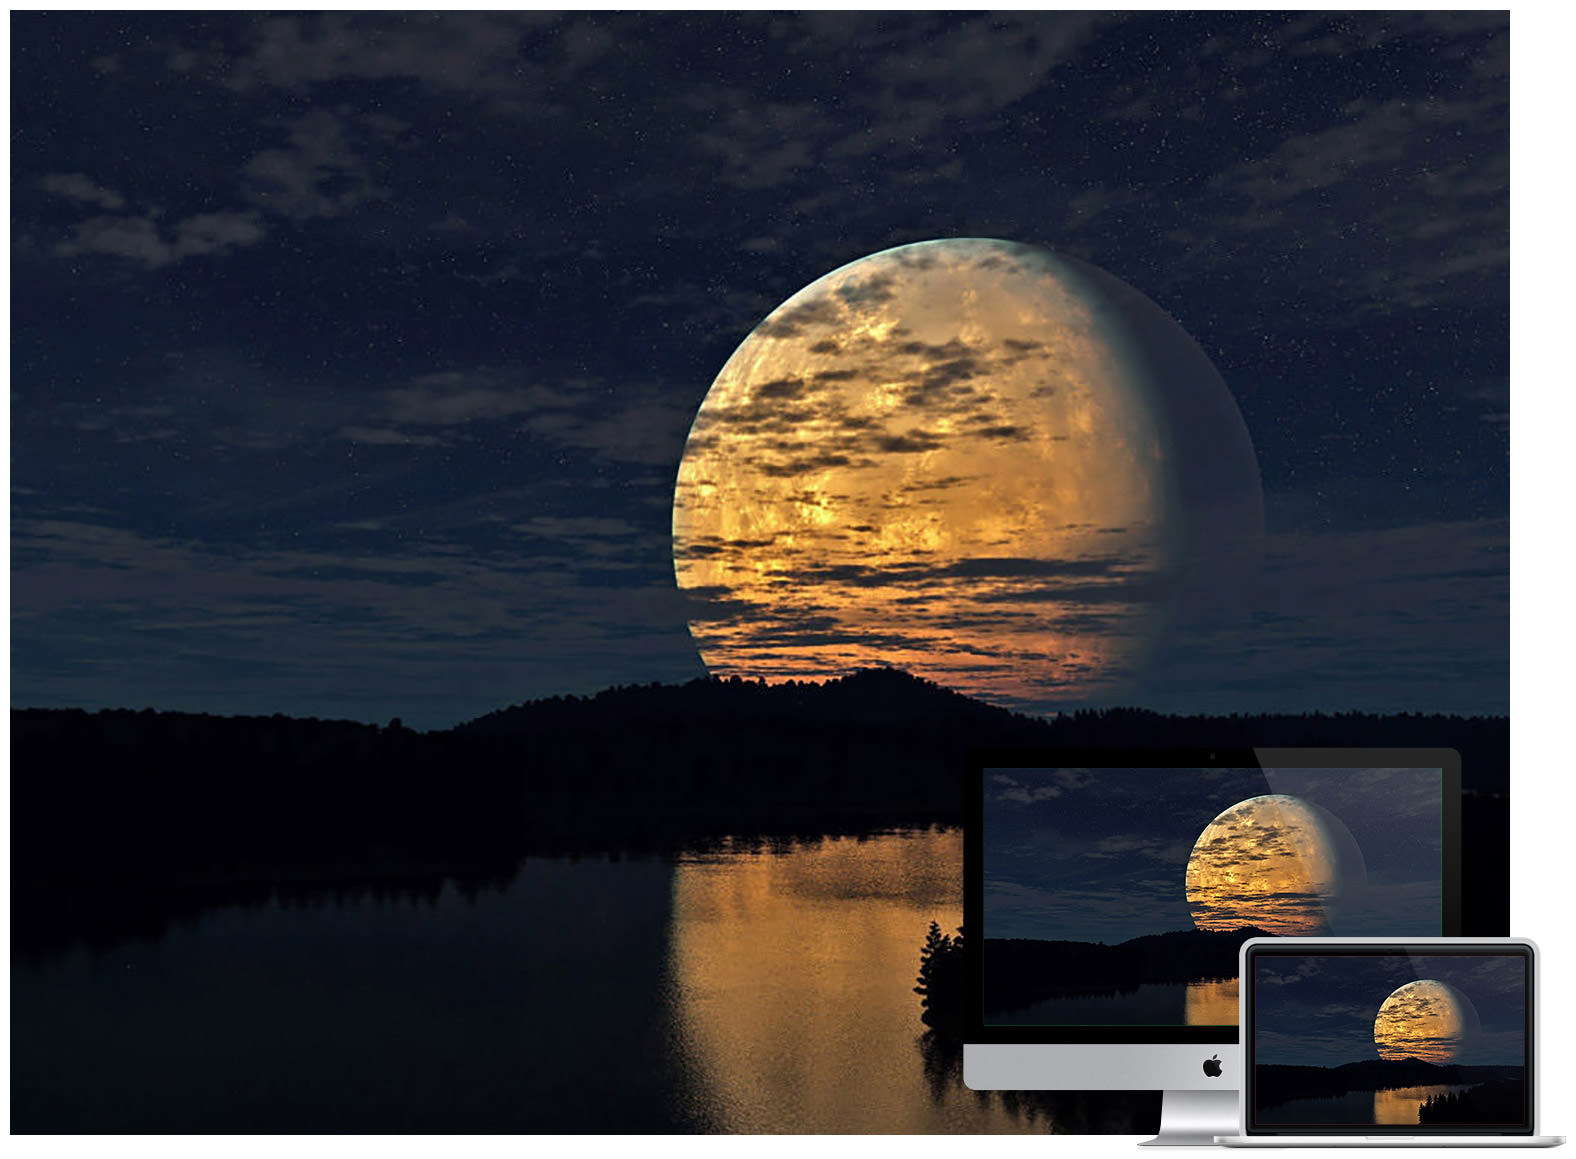 night-sky-moon-river-reflection